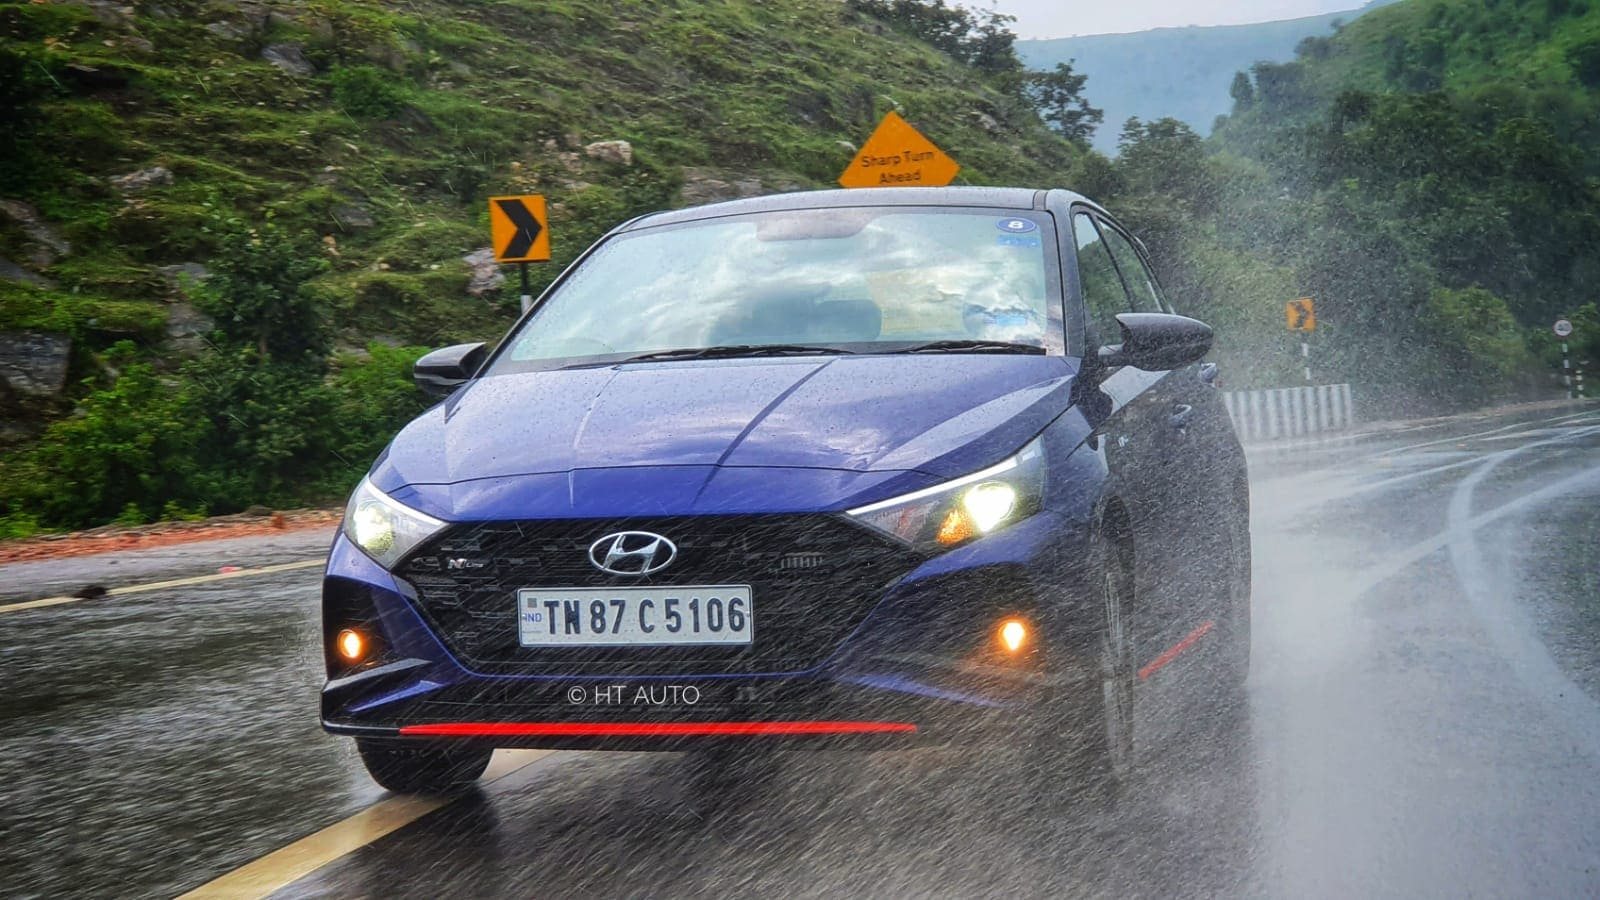 Hyundai recently launched the i20 N Line in the country at a starting price of <span class='webrupee'>₹</span>9.84 lakh (ex-showroom), going up to <span class='webrupee'>₹</span>11.75 lakh for the top-line model. The hot hatch is aimed squarely at the young and those young at heart.